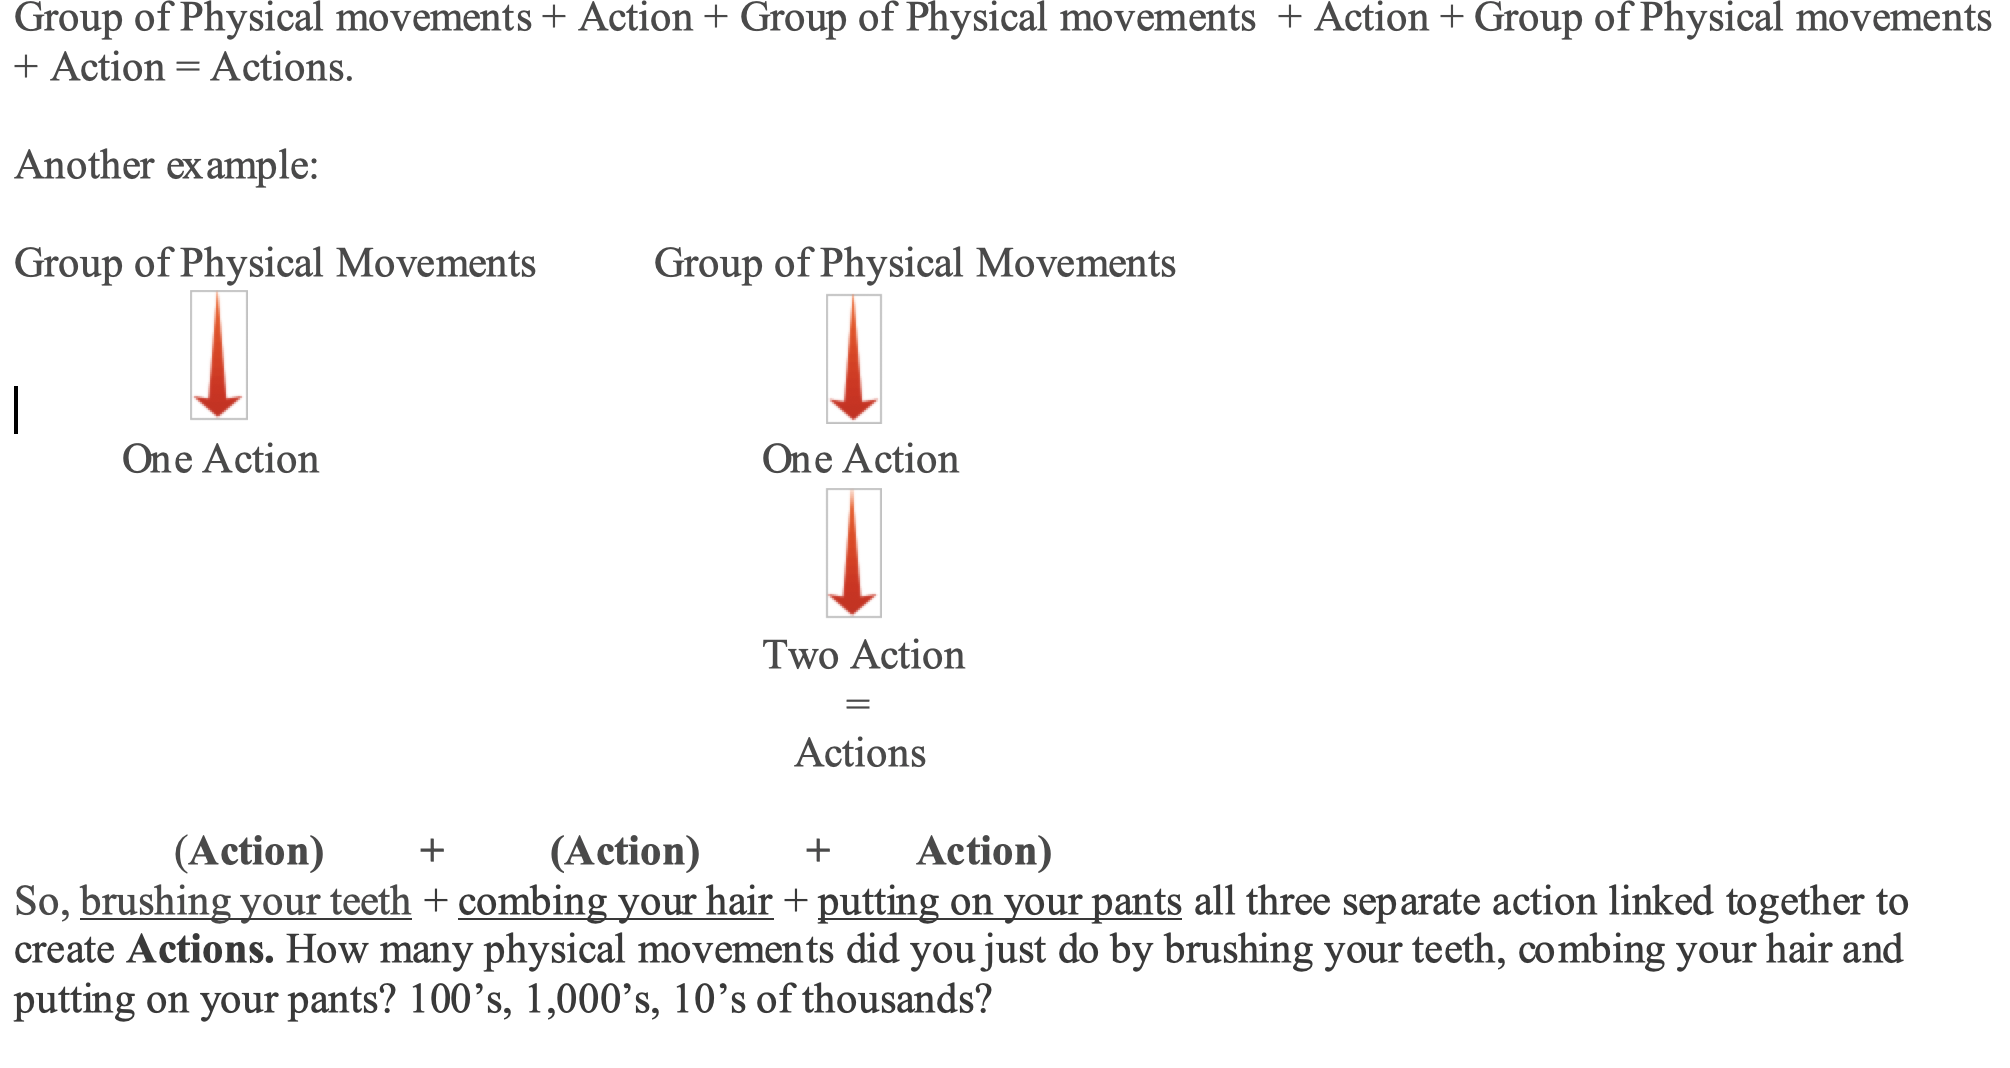 Group of physical movements